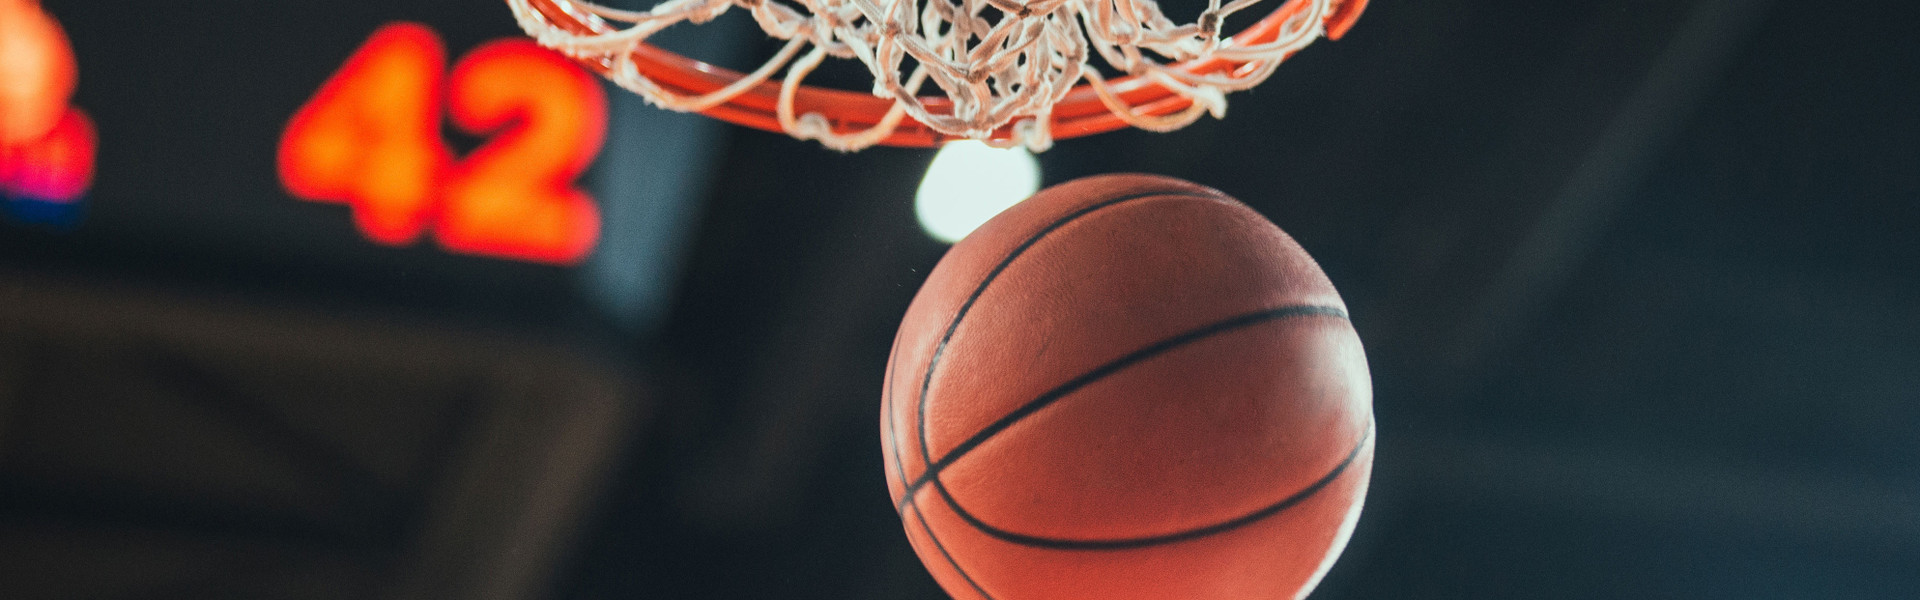 Traveling to Las Vegas for March Madness? Enjoy college hoops action on giant HD screens in a smoke-free environment.